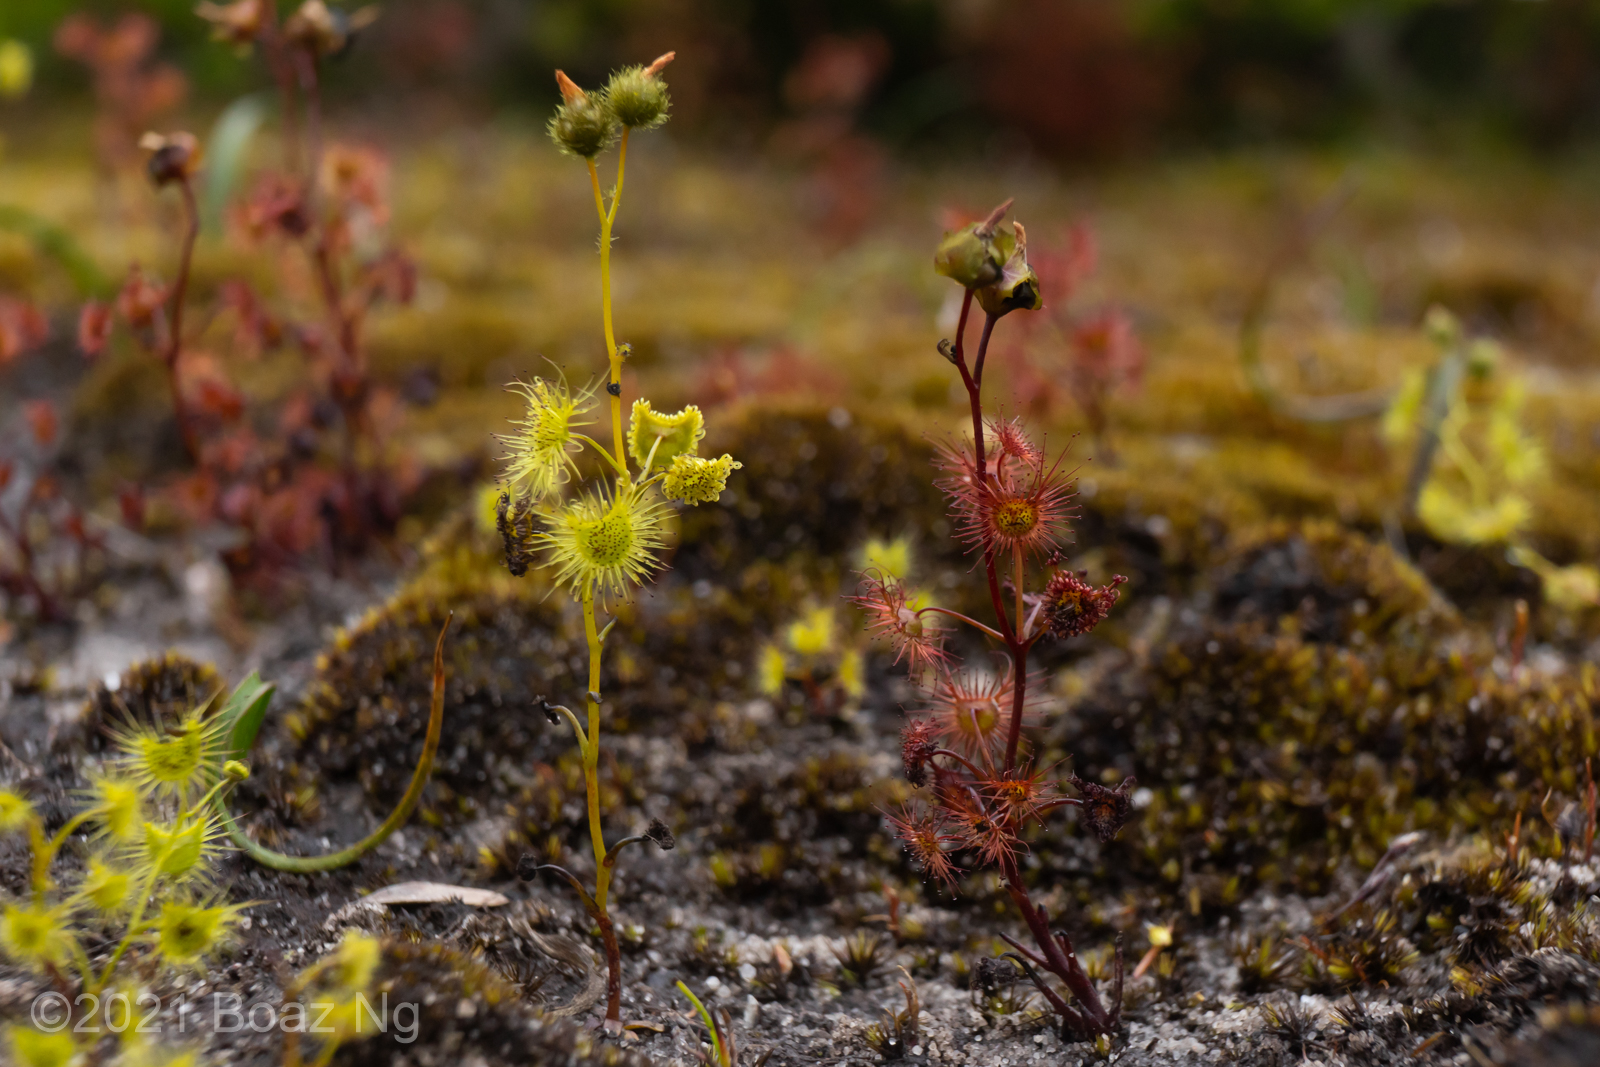 A pictorial key of the Drosera peltata complex